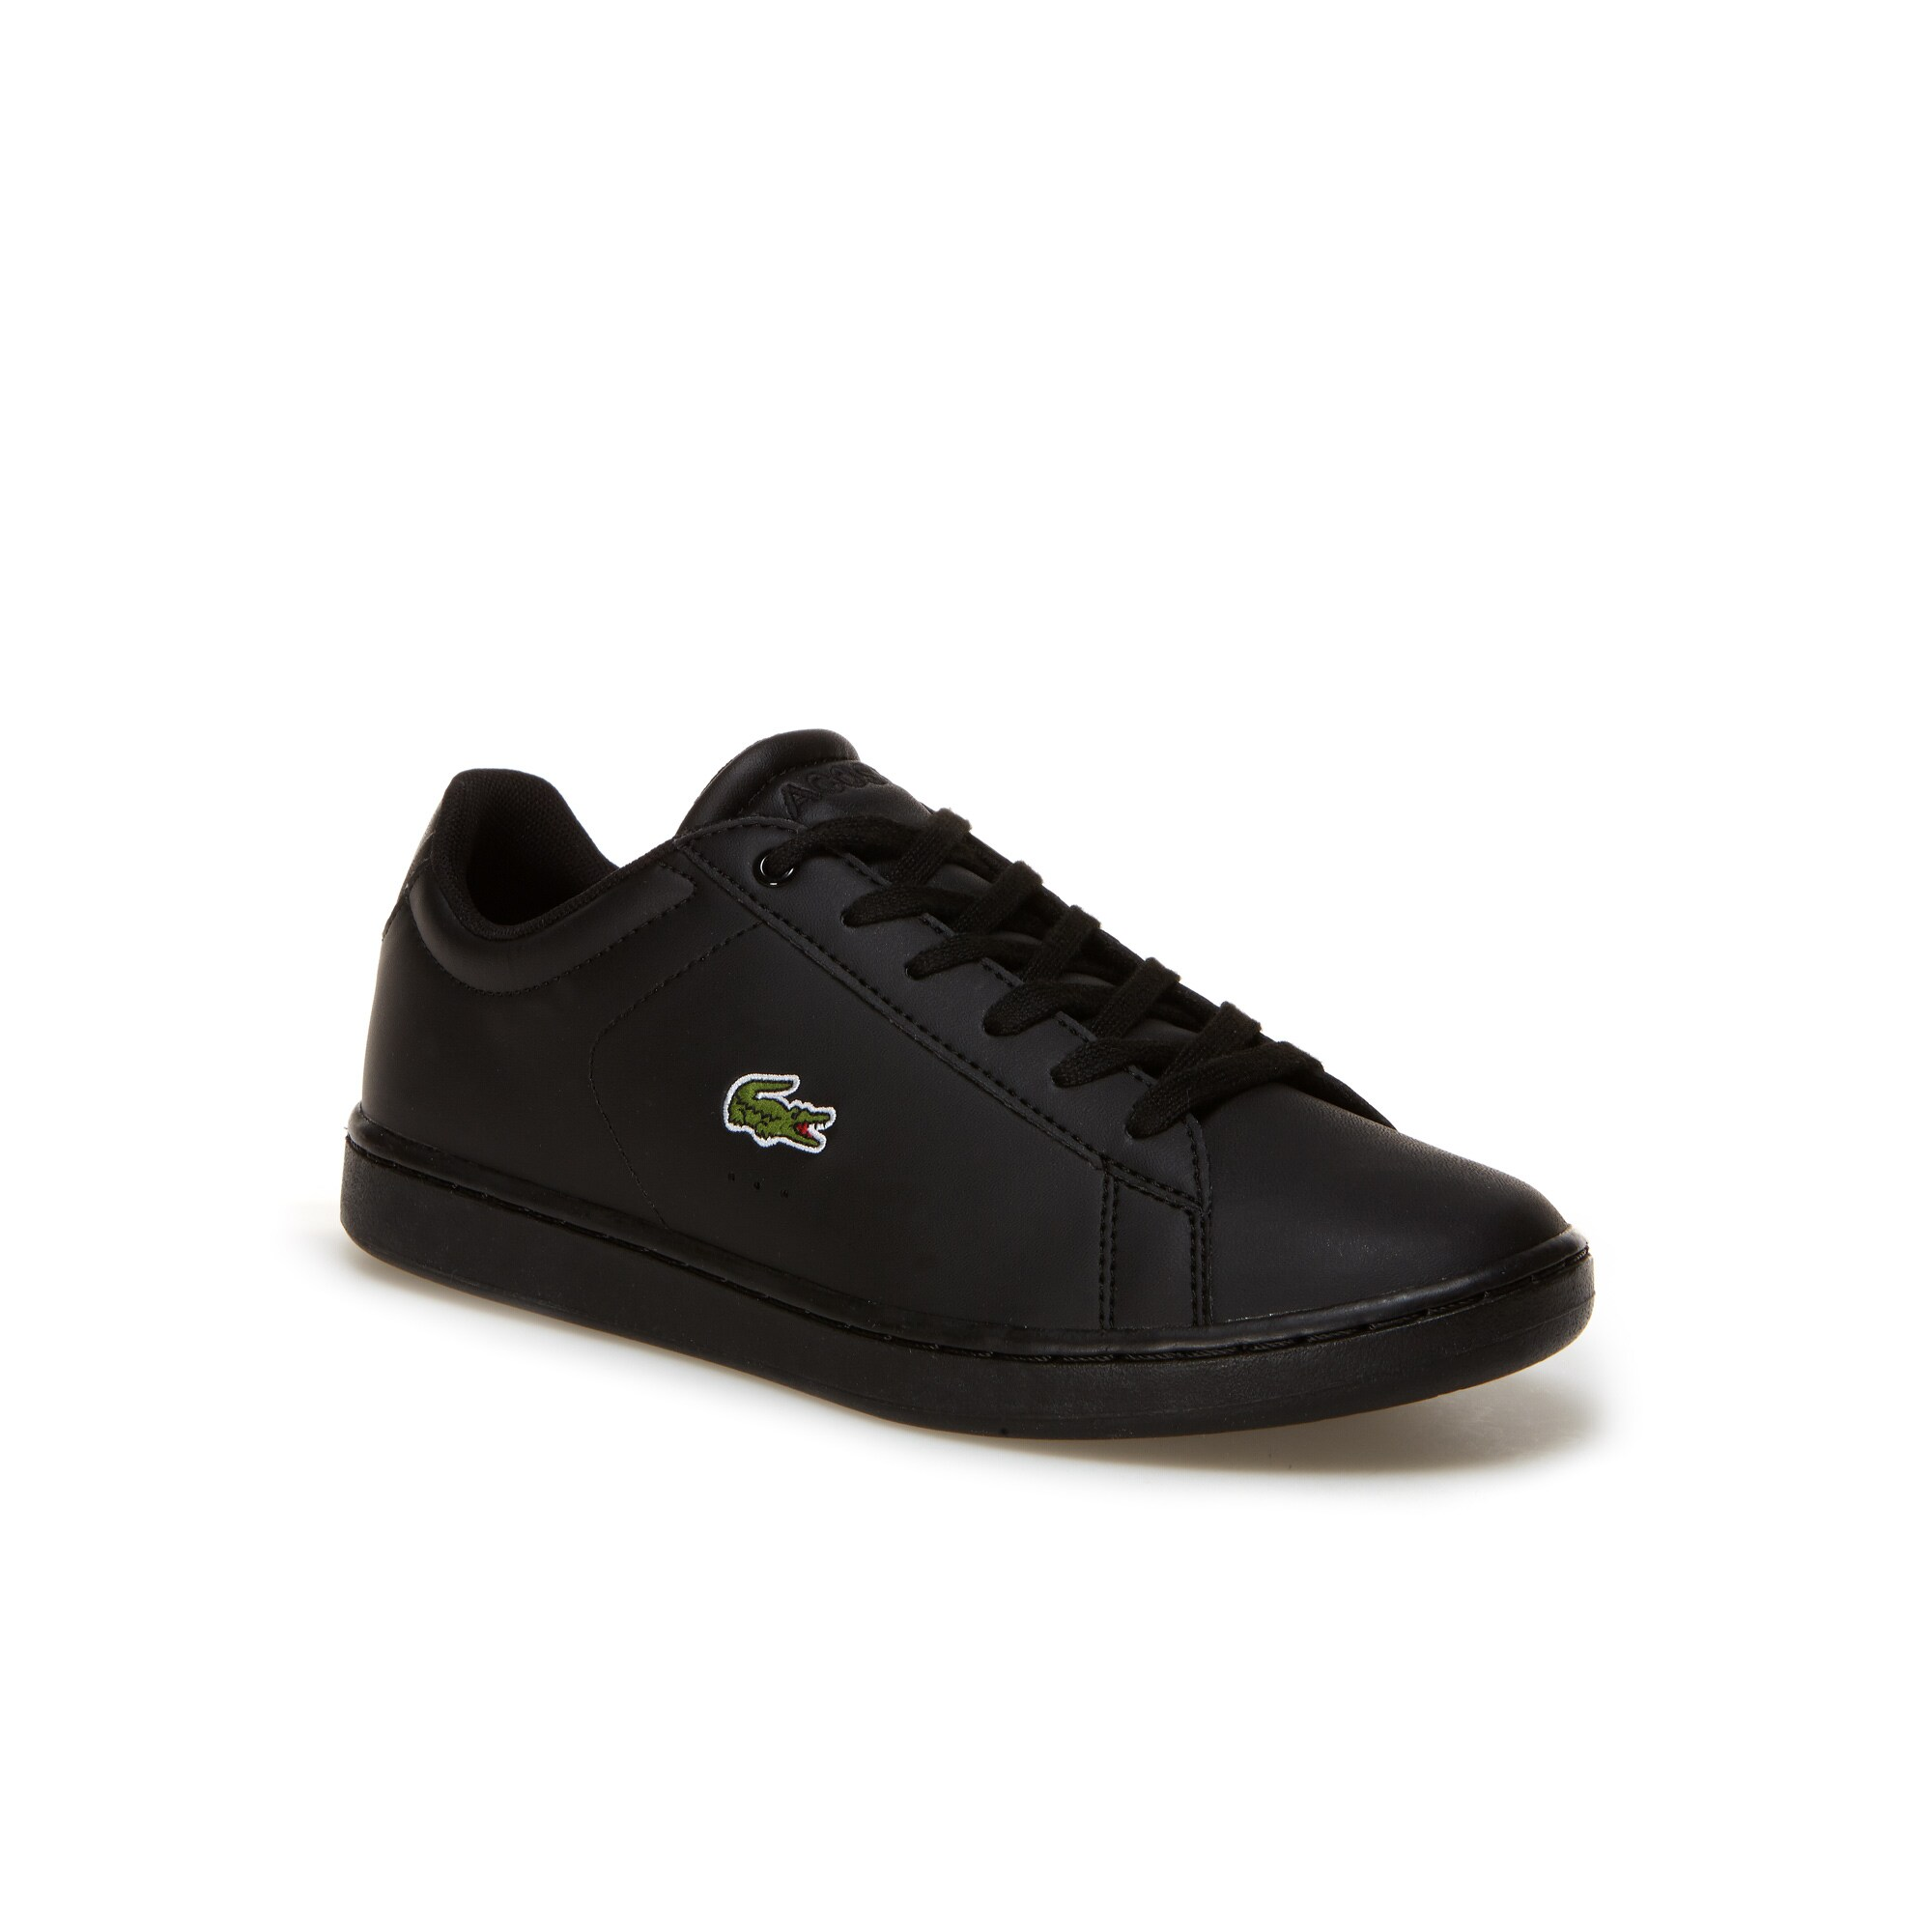 Teen-Sneakers CARNABY EVO in Leder-Optik und Gummi